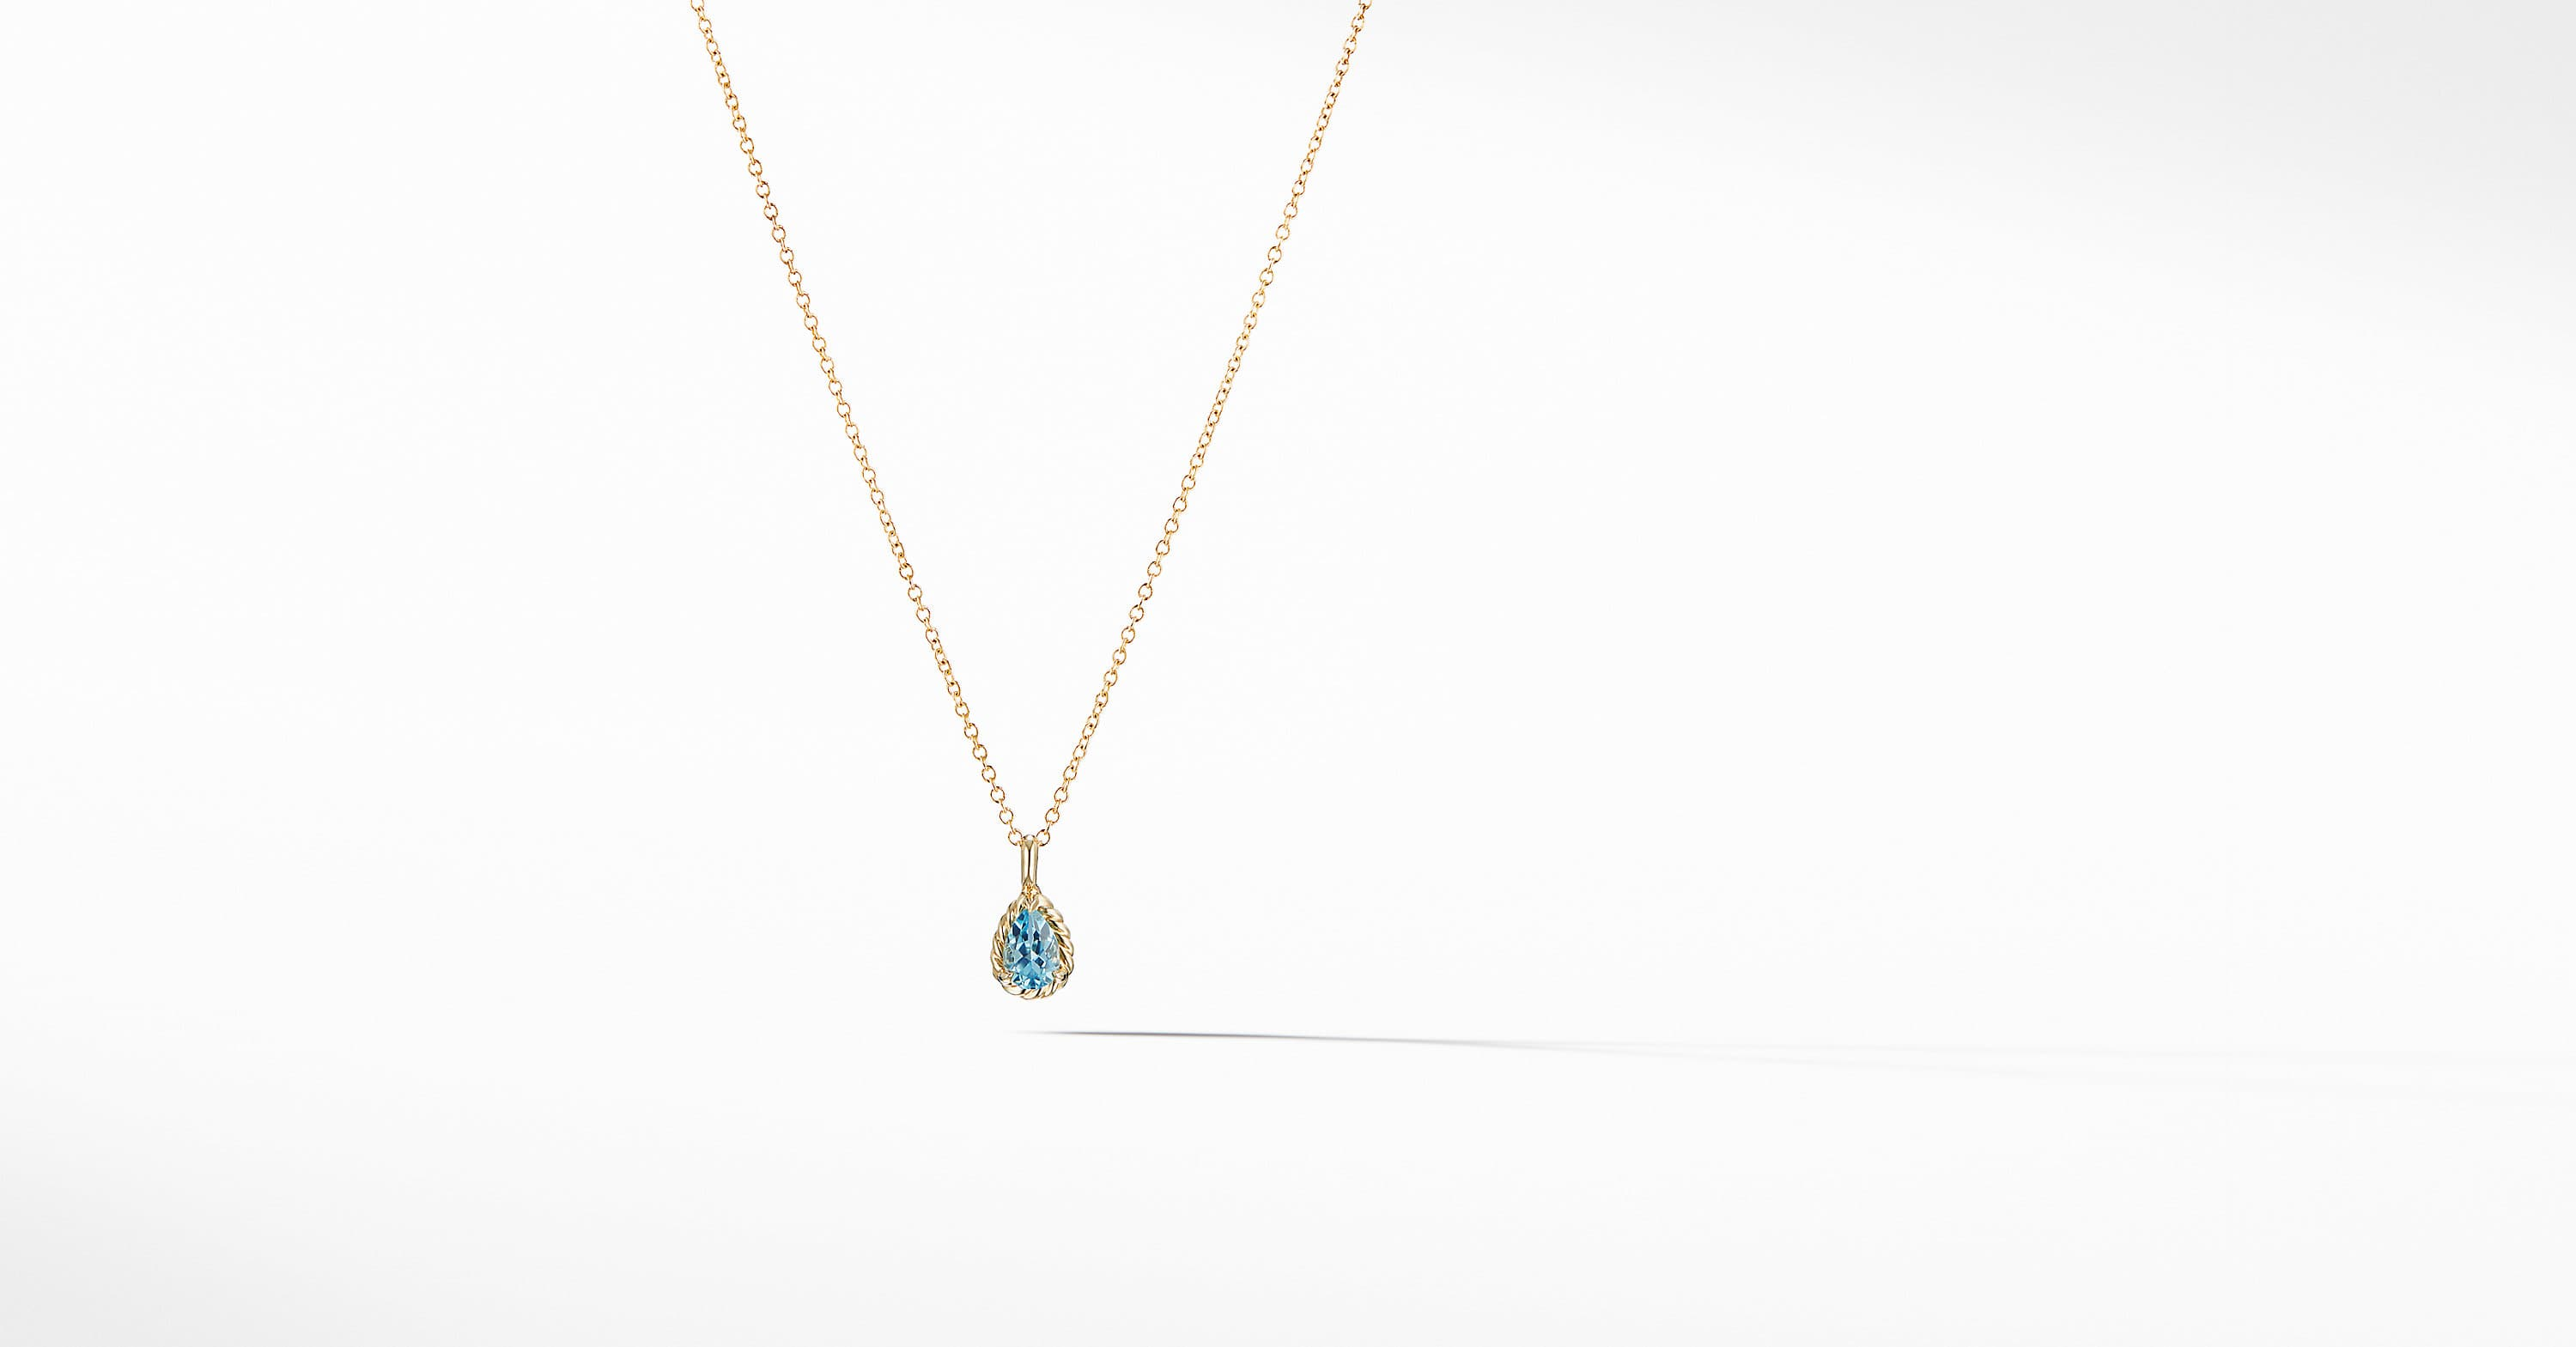 Cable Collectibles Kids Teardrop Charm Necklace in 18K Gold